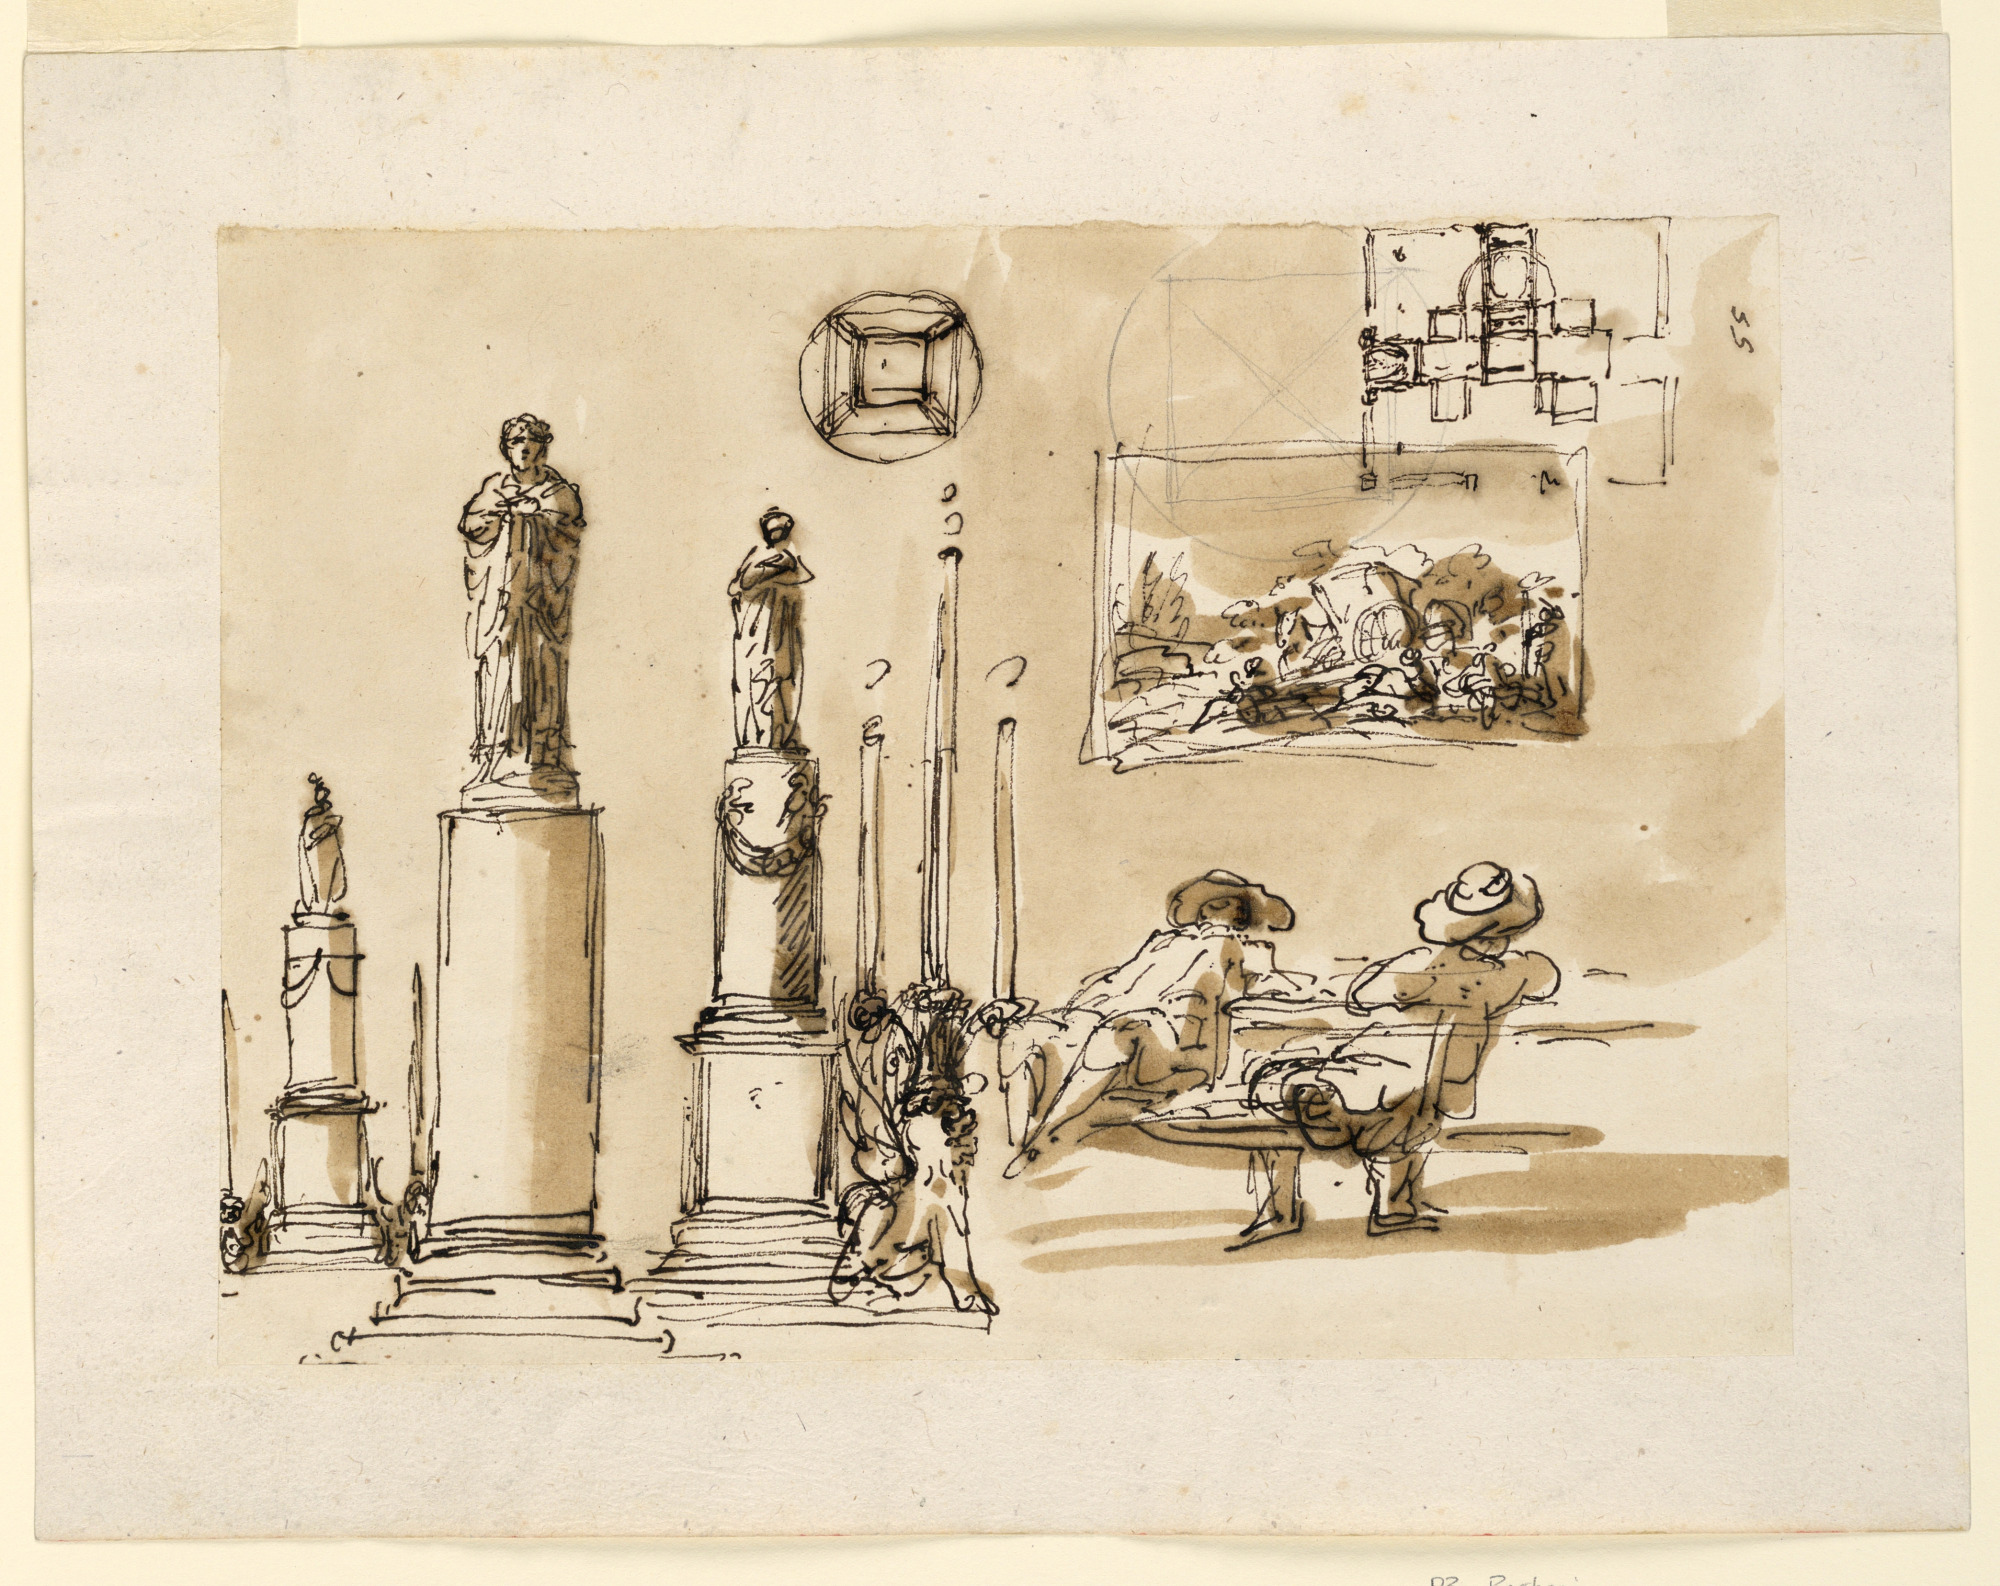 Lighting fixtures; a plan; two men at a table